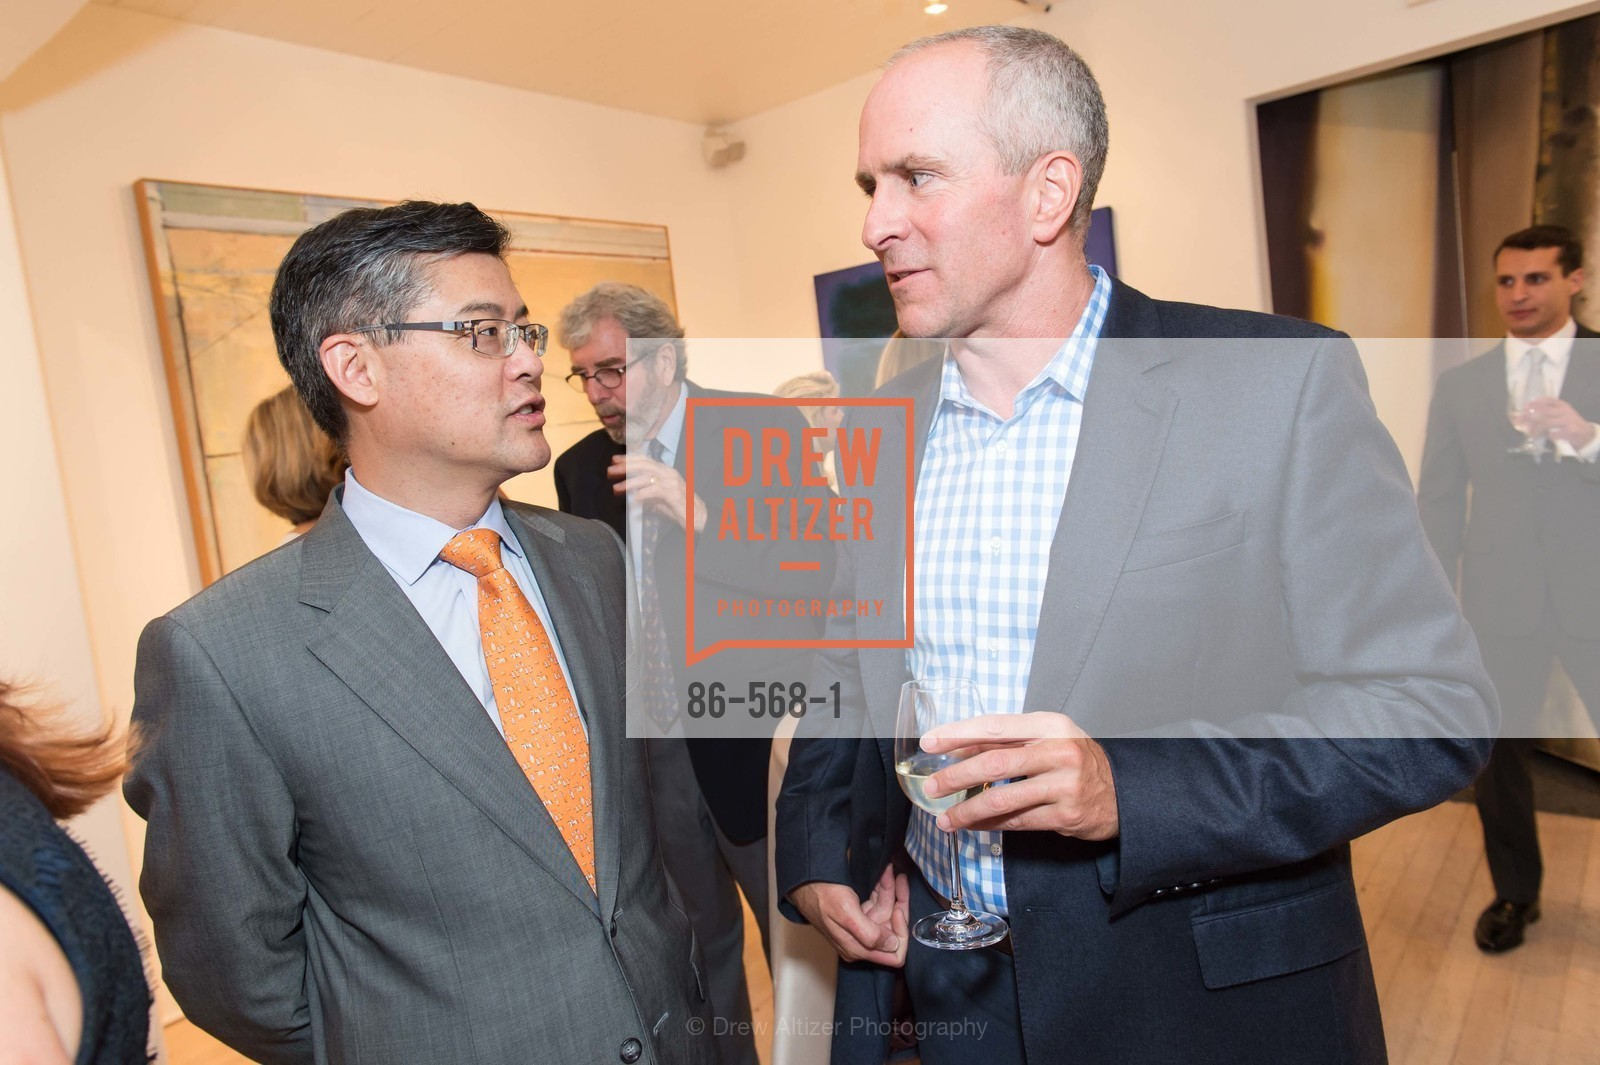 Jay Xu, Jay Backstrand, SOTHEBY'S  Hosts a Private Viewing of Highlights from the Collection of MRS. PAUL MELLON, US, September 17th, 2014,Drew Altizer, Drew Altizer Photography, full-service agency, private events, San Francisco photographer, photographer california